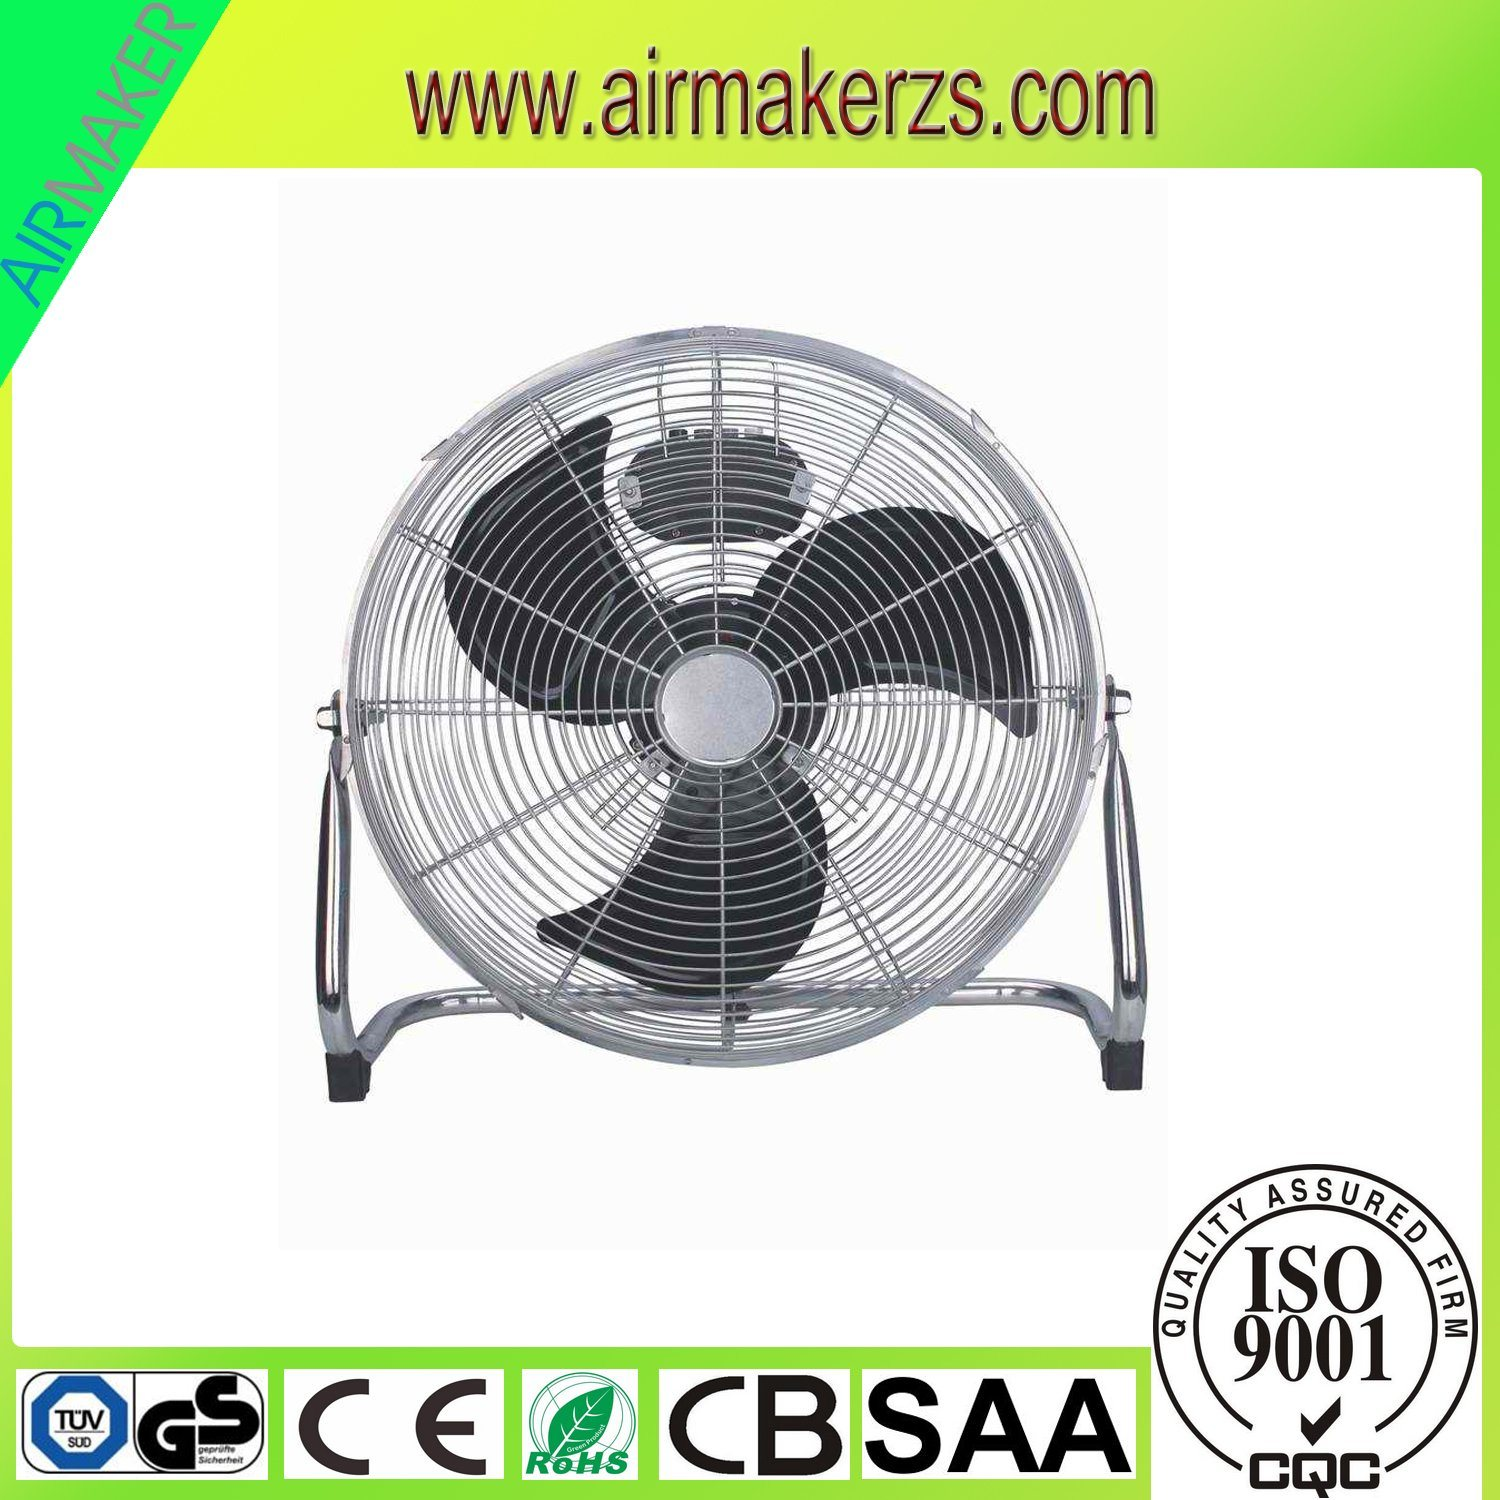 18-in 3-Speed High Velocity Fan with GS/Ce/EMC